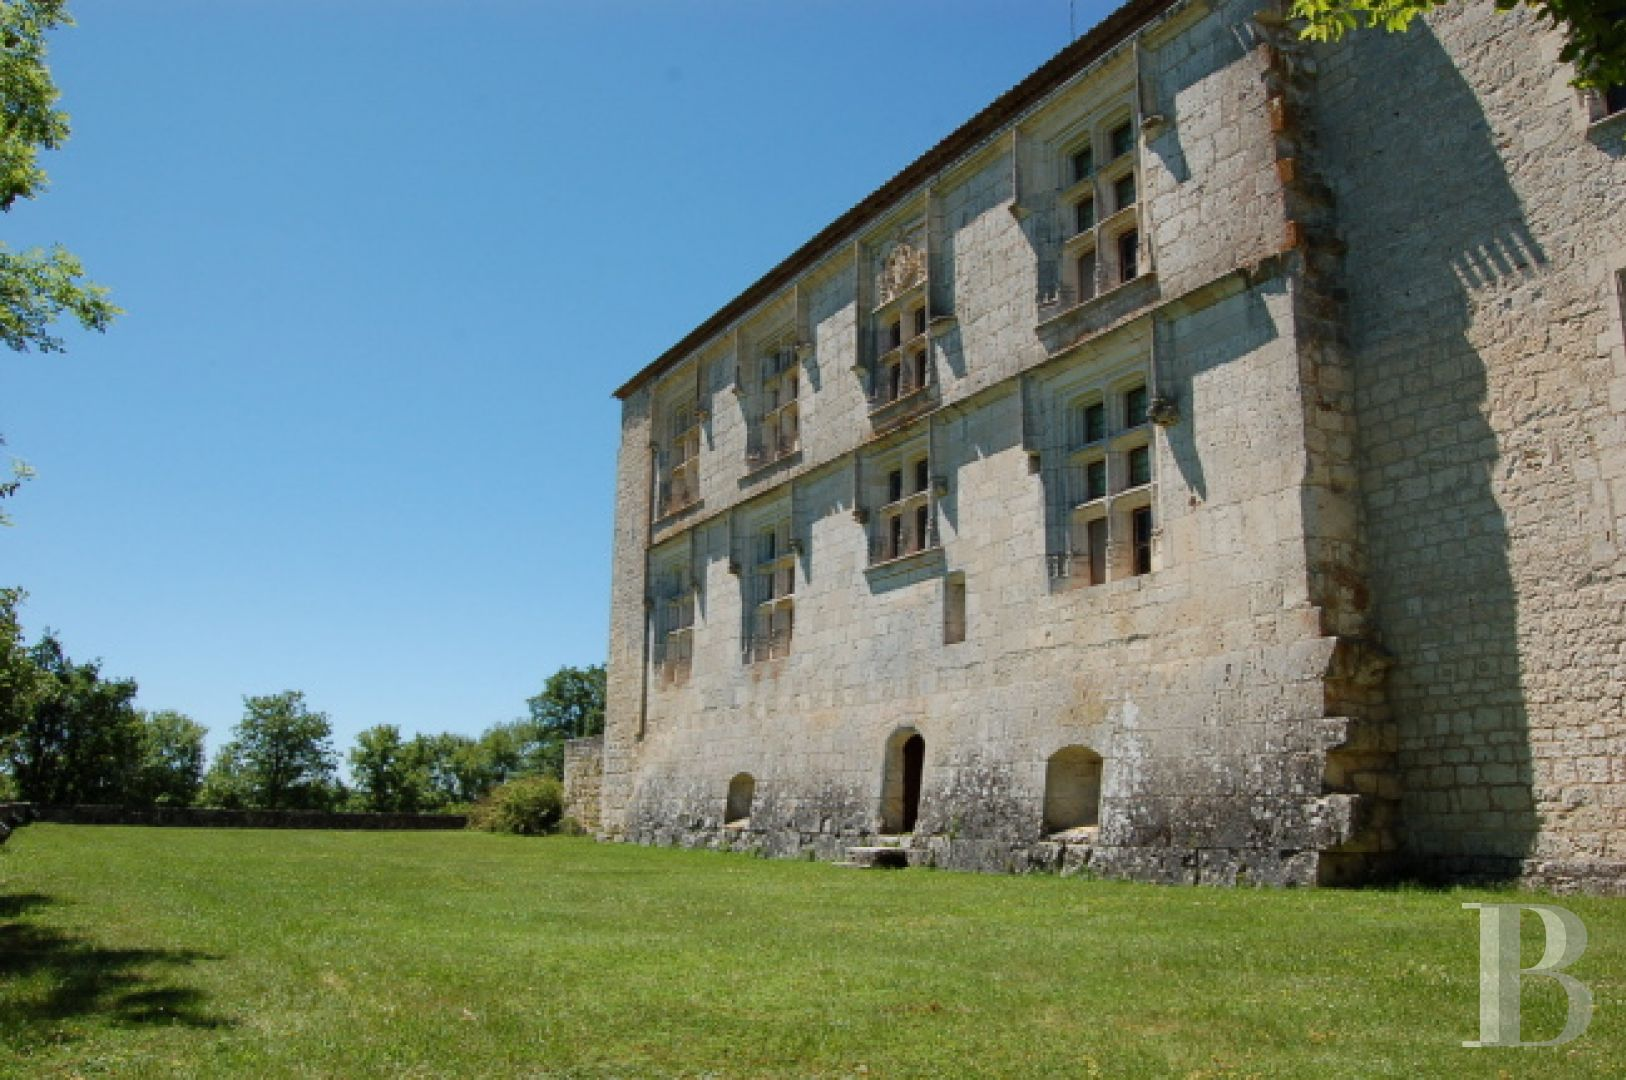 chateaux for sale France midi pyrenees chateau quercy - 3 zoom